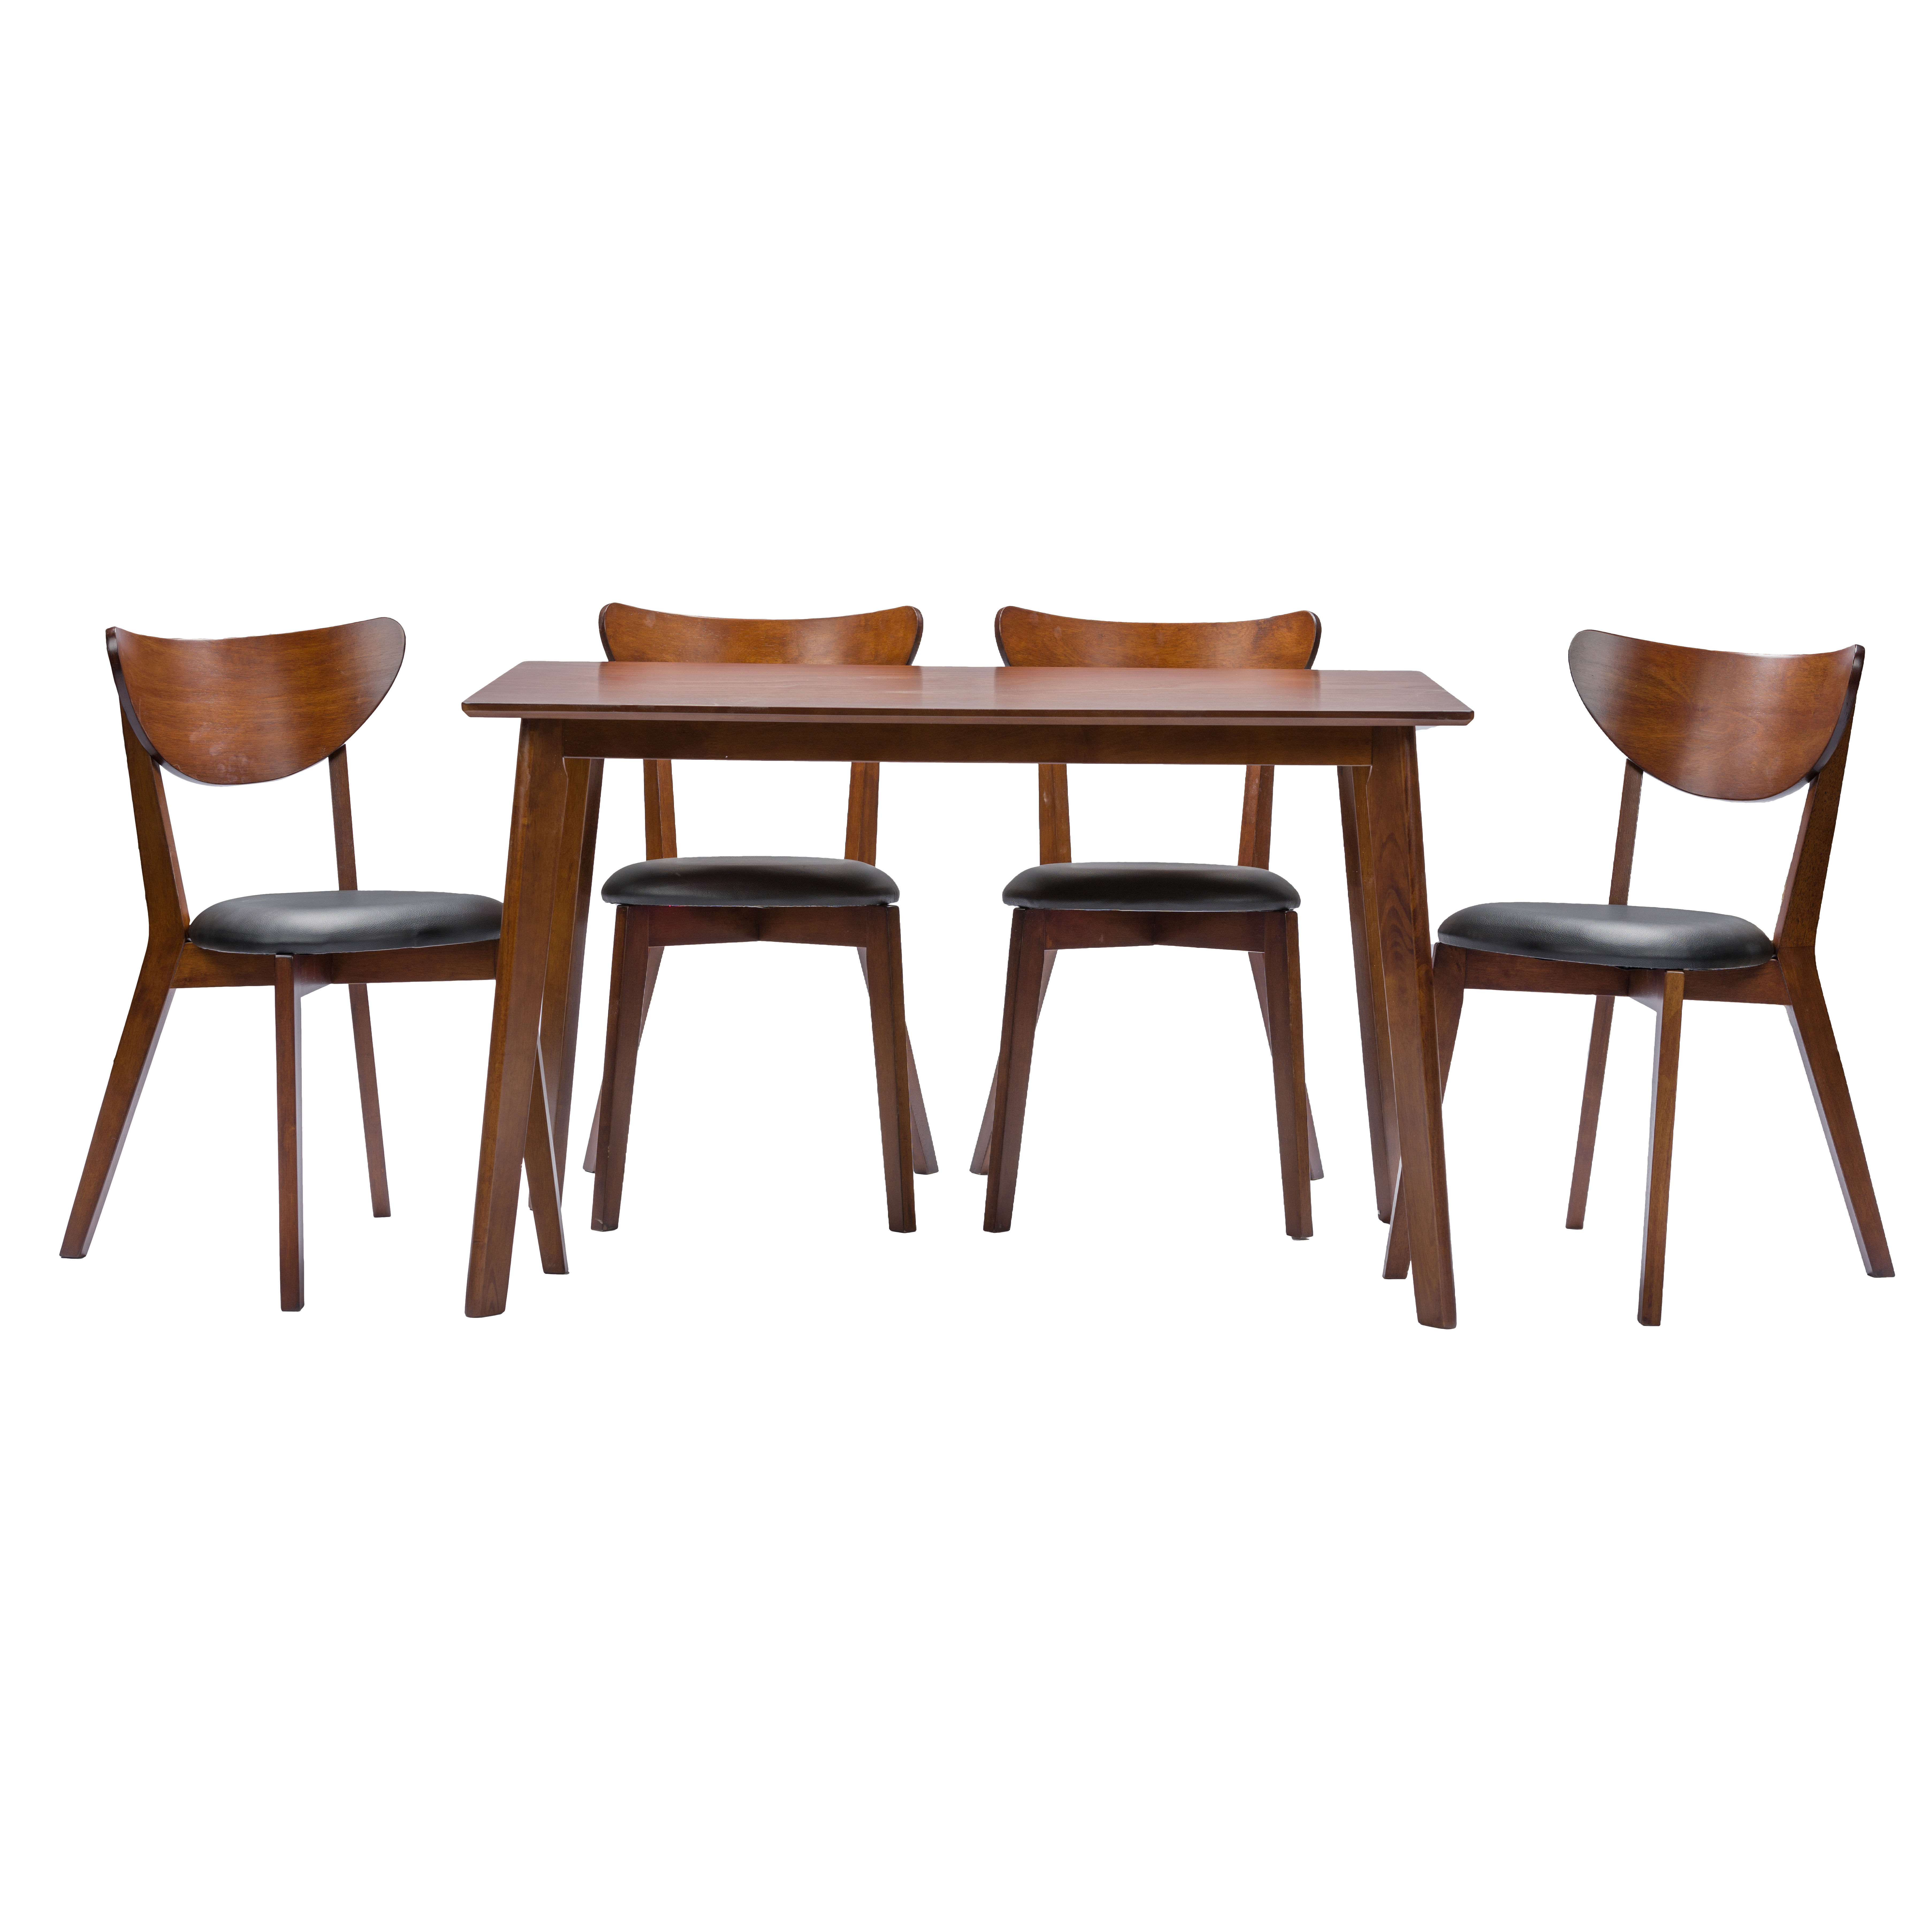 Baxton Studio Keitaro 5 Piece Dining Sets With Well Liked Wholesale Dining Sets. Room Pier One (View 22 of 25)